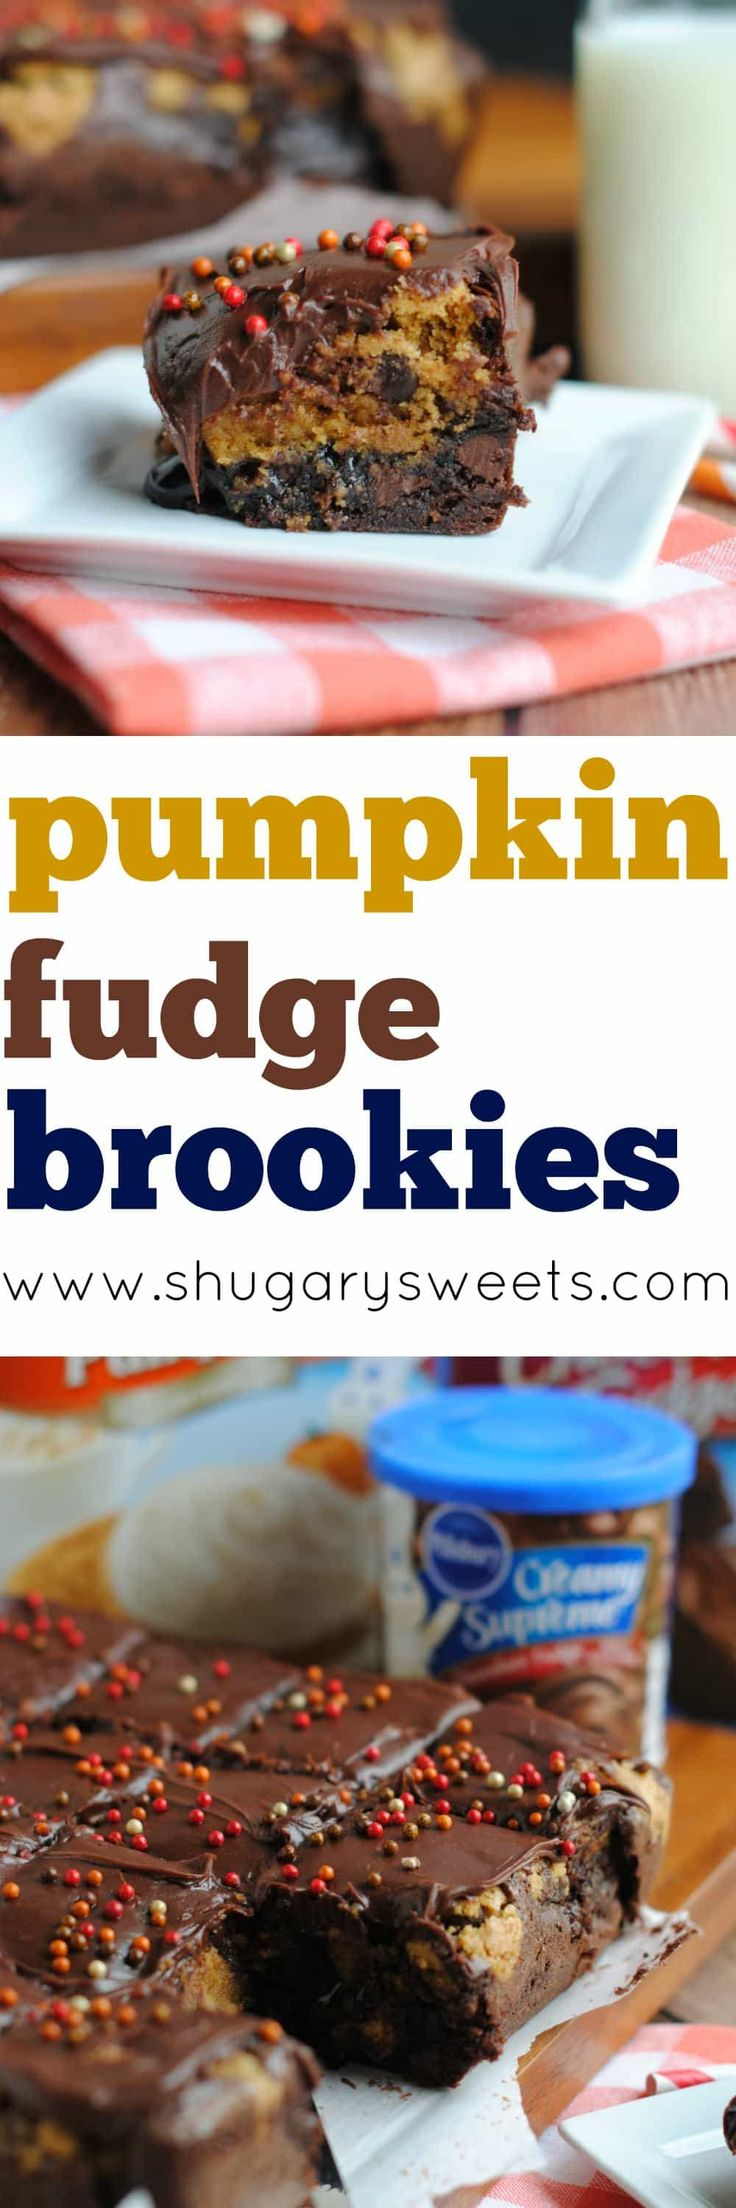 Rich, fudgy bars that are perfect for Fall. These Pumpkin Fudge Brookies are so easy to make using some of your favorite Pillsbury products!